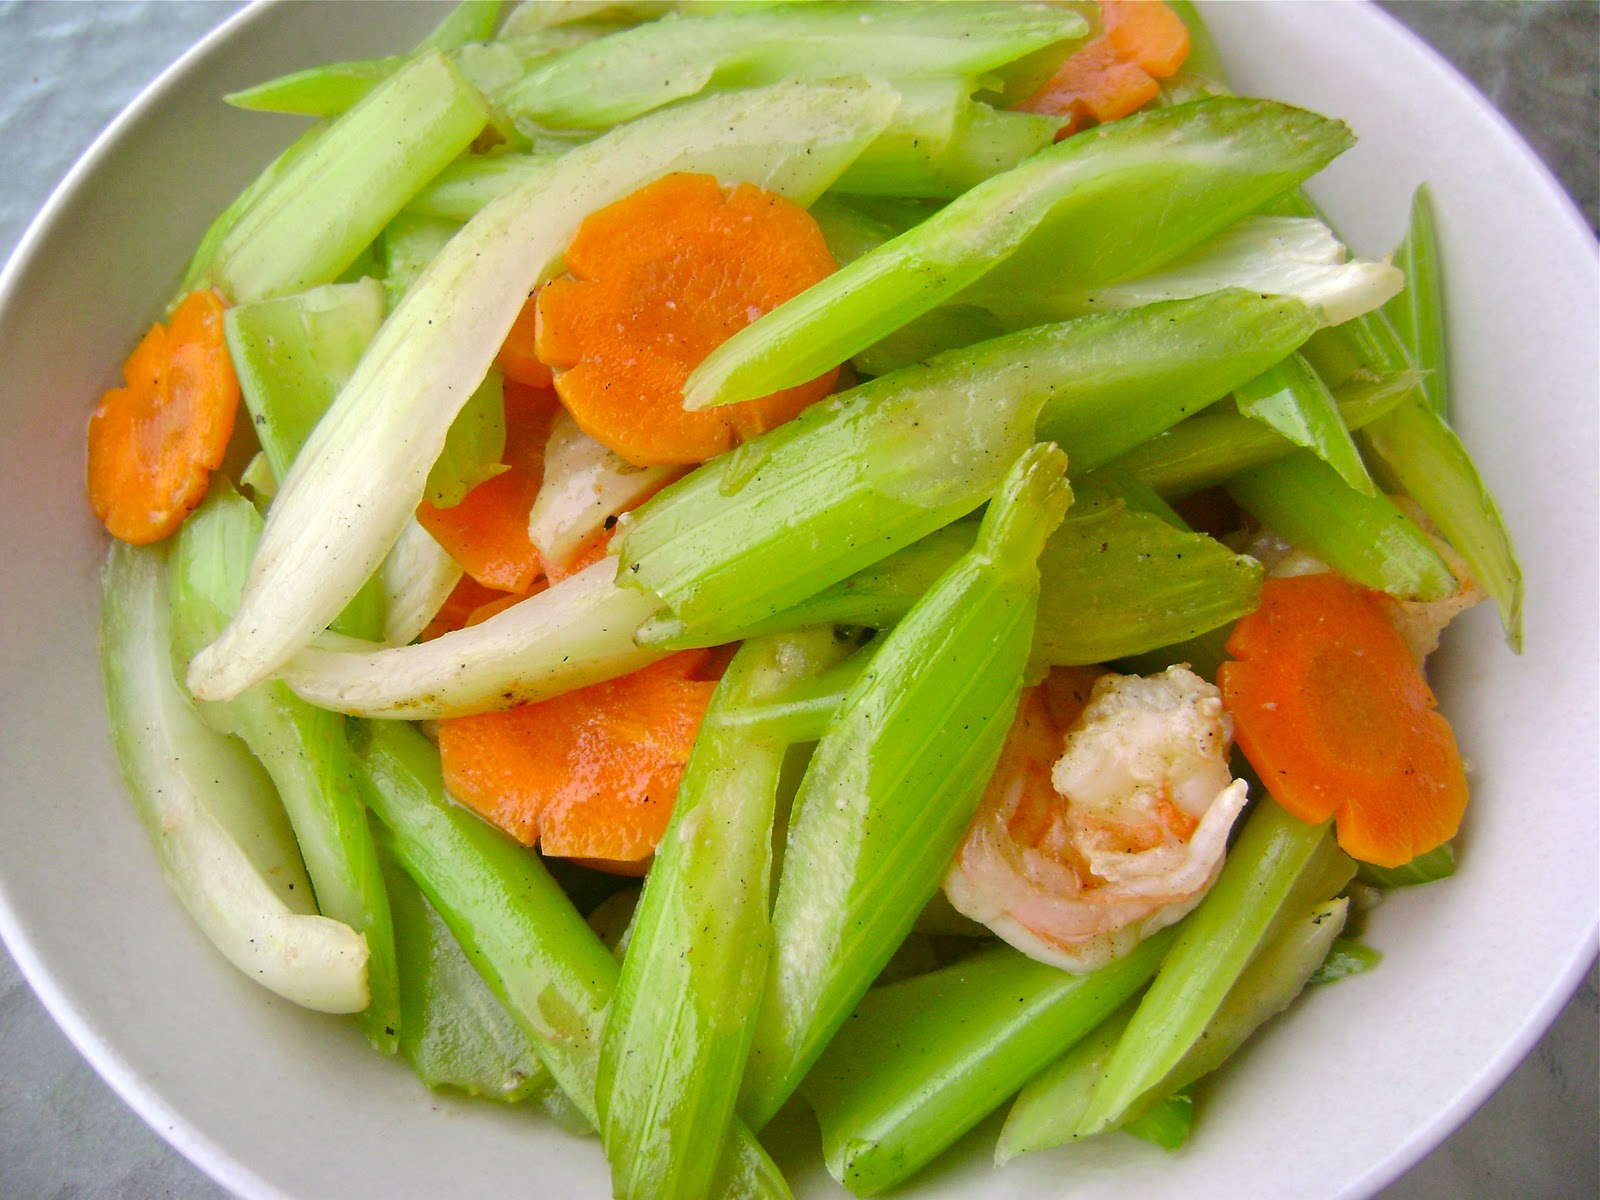 Savories and Sweets by Keyna: Stir-Fry Celery With Shrimp